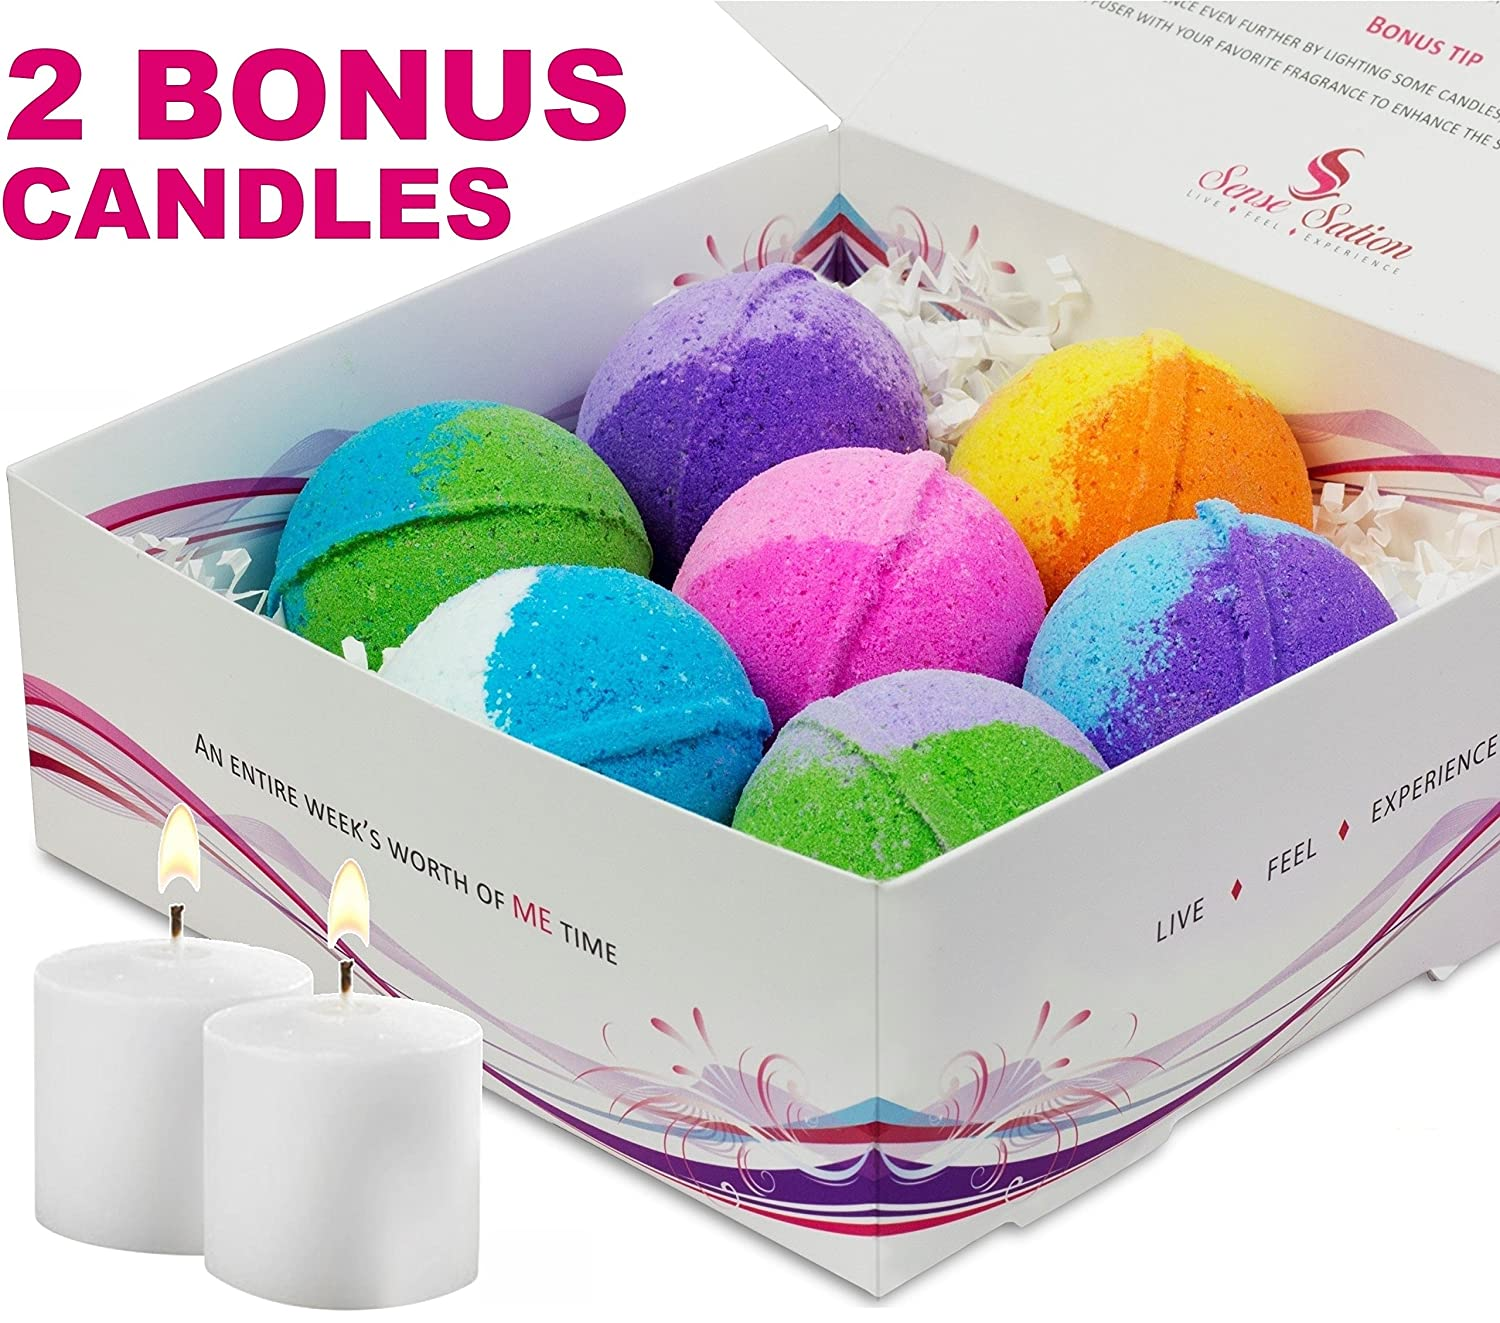 7 Luxurious Bath Bombs Gift Set (FREE BONUS of 2 Votive Candles). USA Handmade Ultra Lush Spa Bath Fizzies 4.5 oz. each, Organic Essential Oil, Fizzy & Colorful, Aromatherapy & Moisturizing, Vegan & Gluten Free Kit Sense Sation